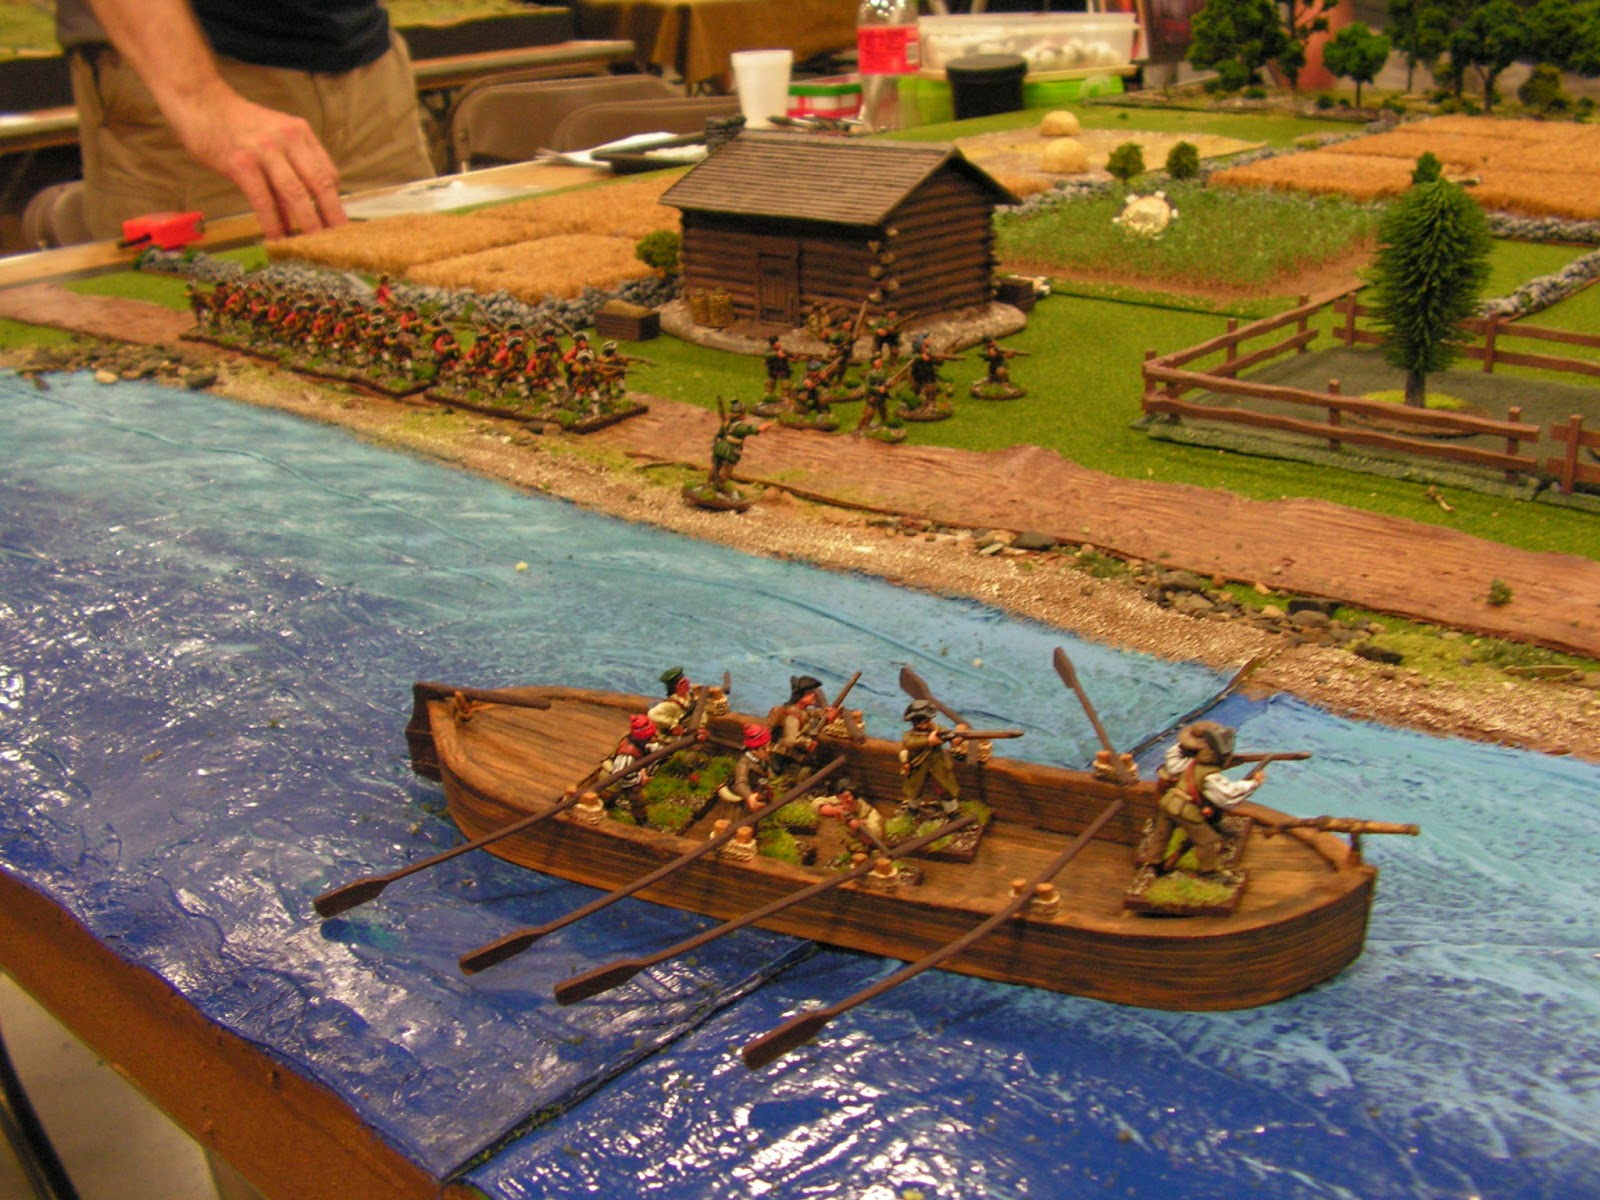 Wargaming The French And Indian War Battle Of Bloody Run